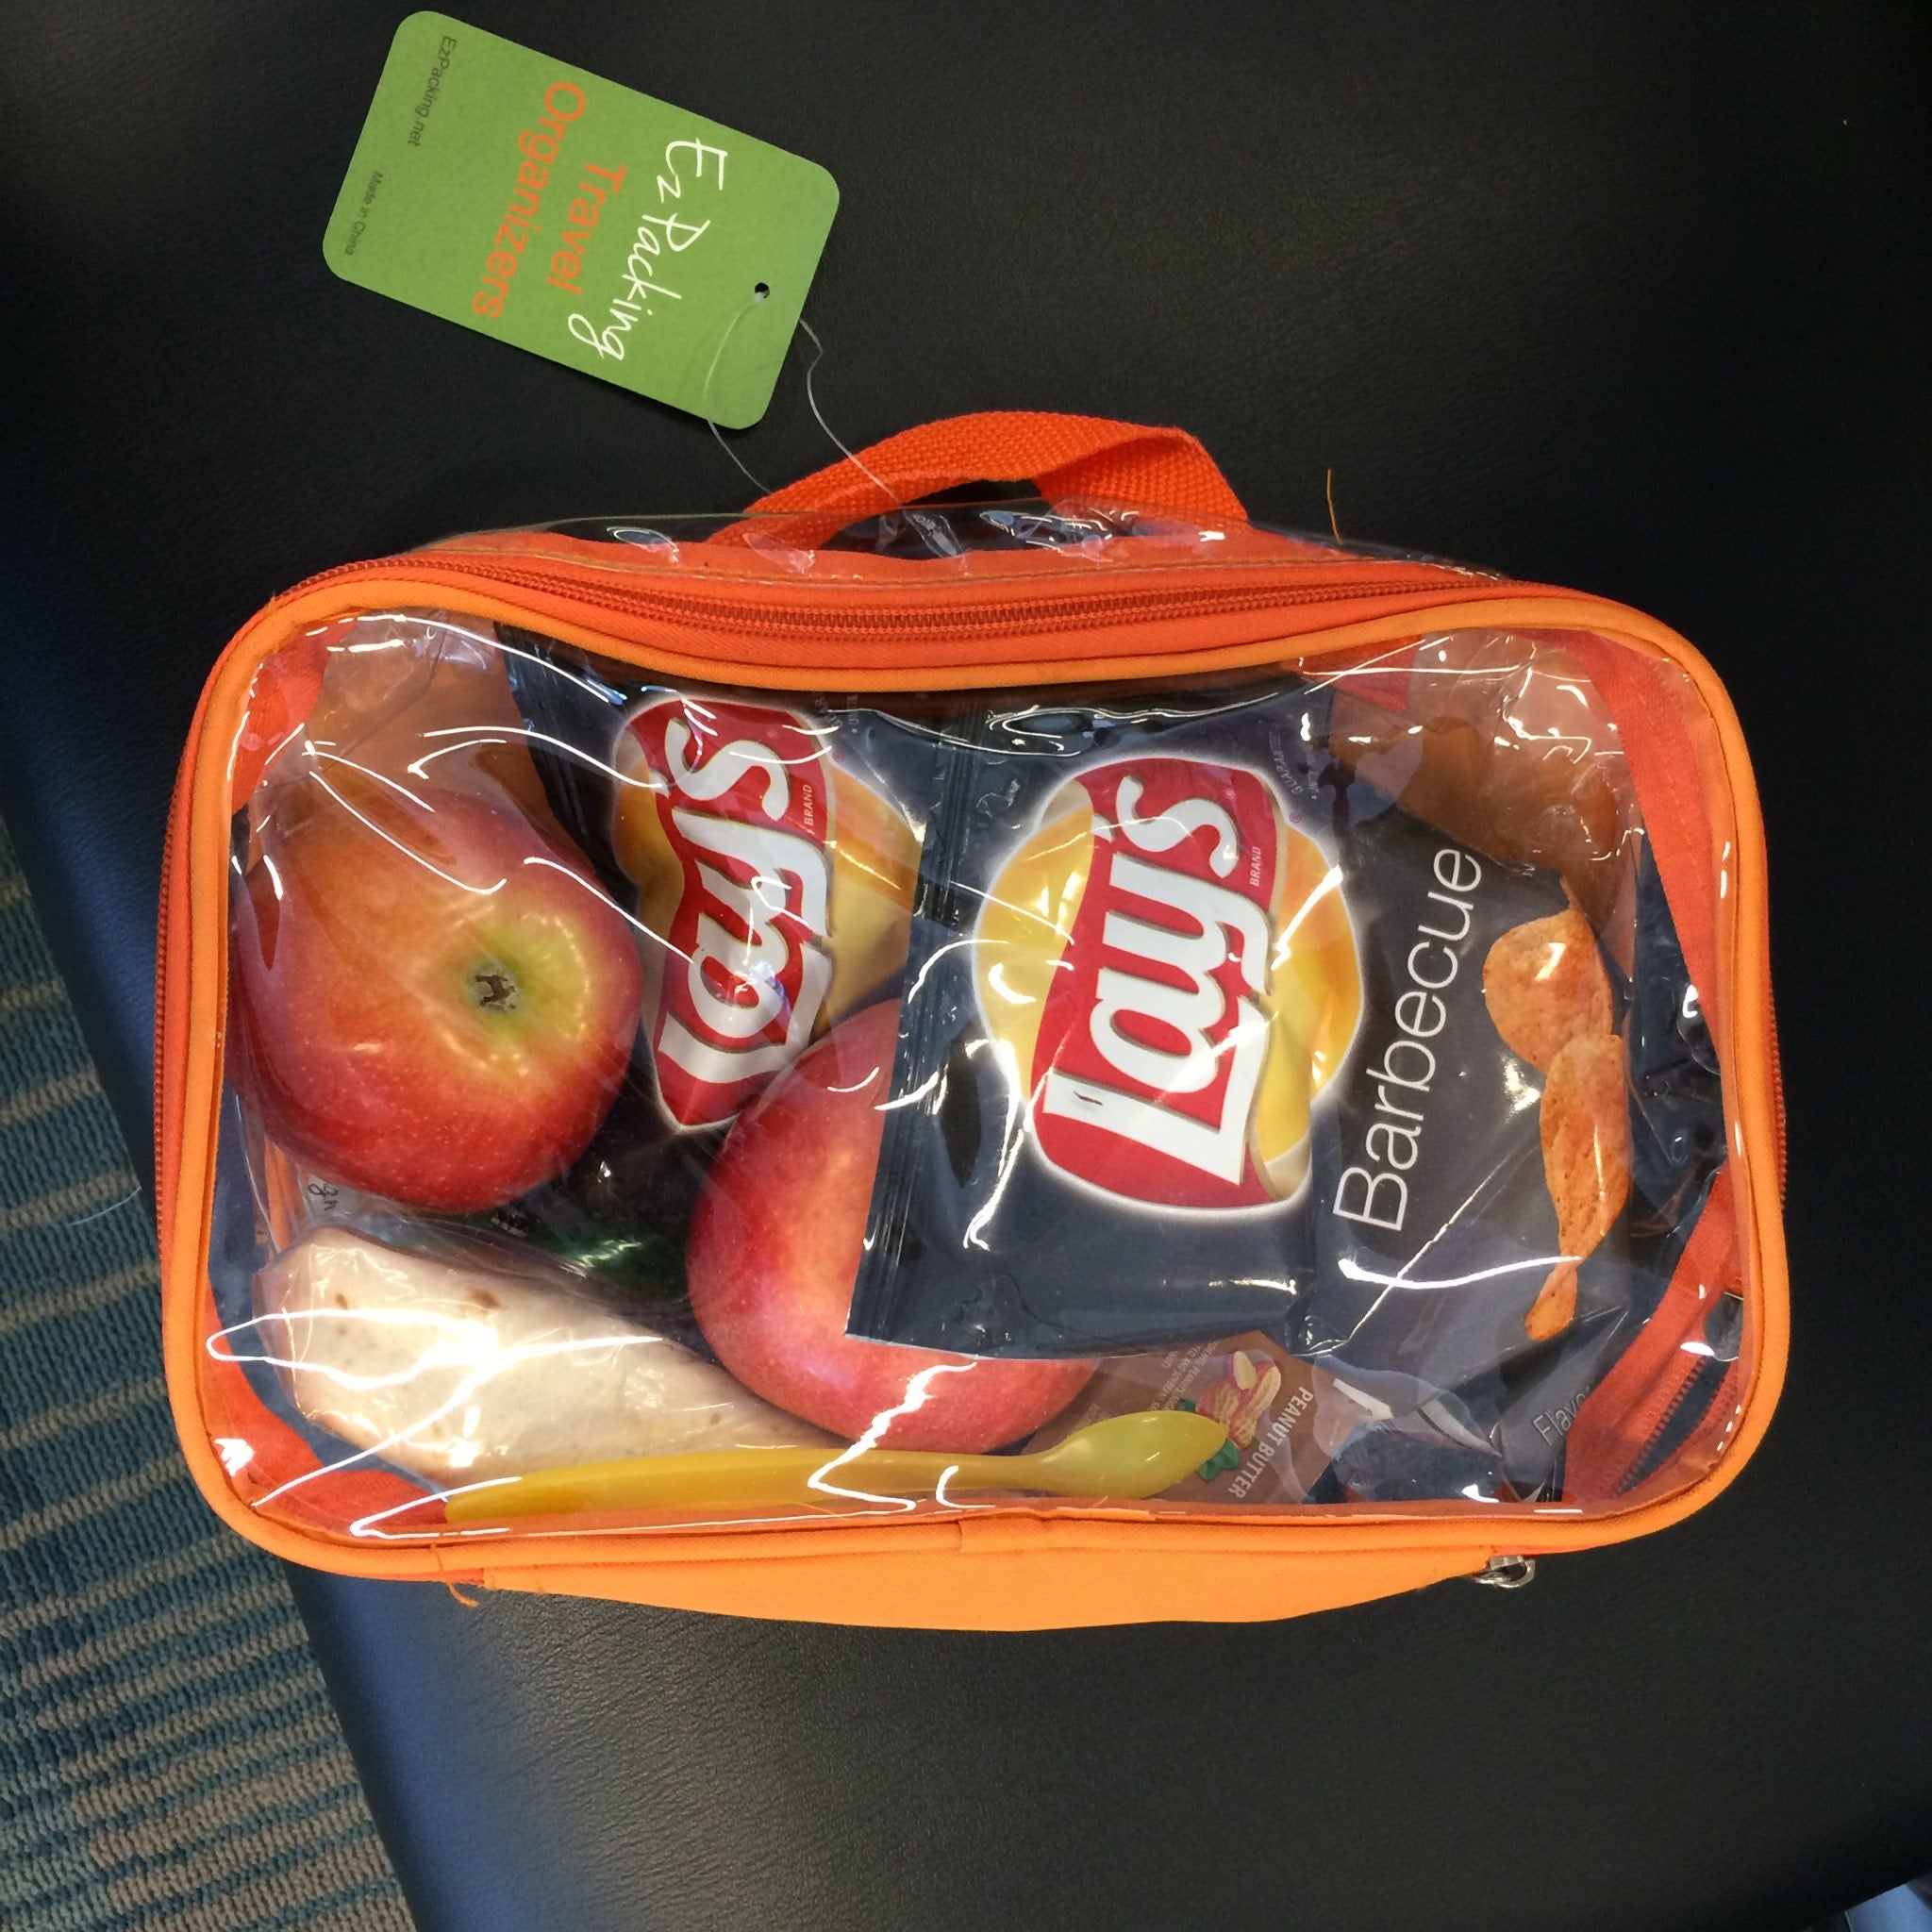 Snack pack in a small cube